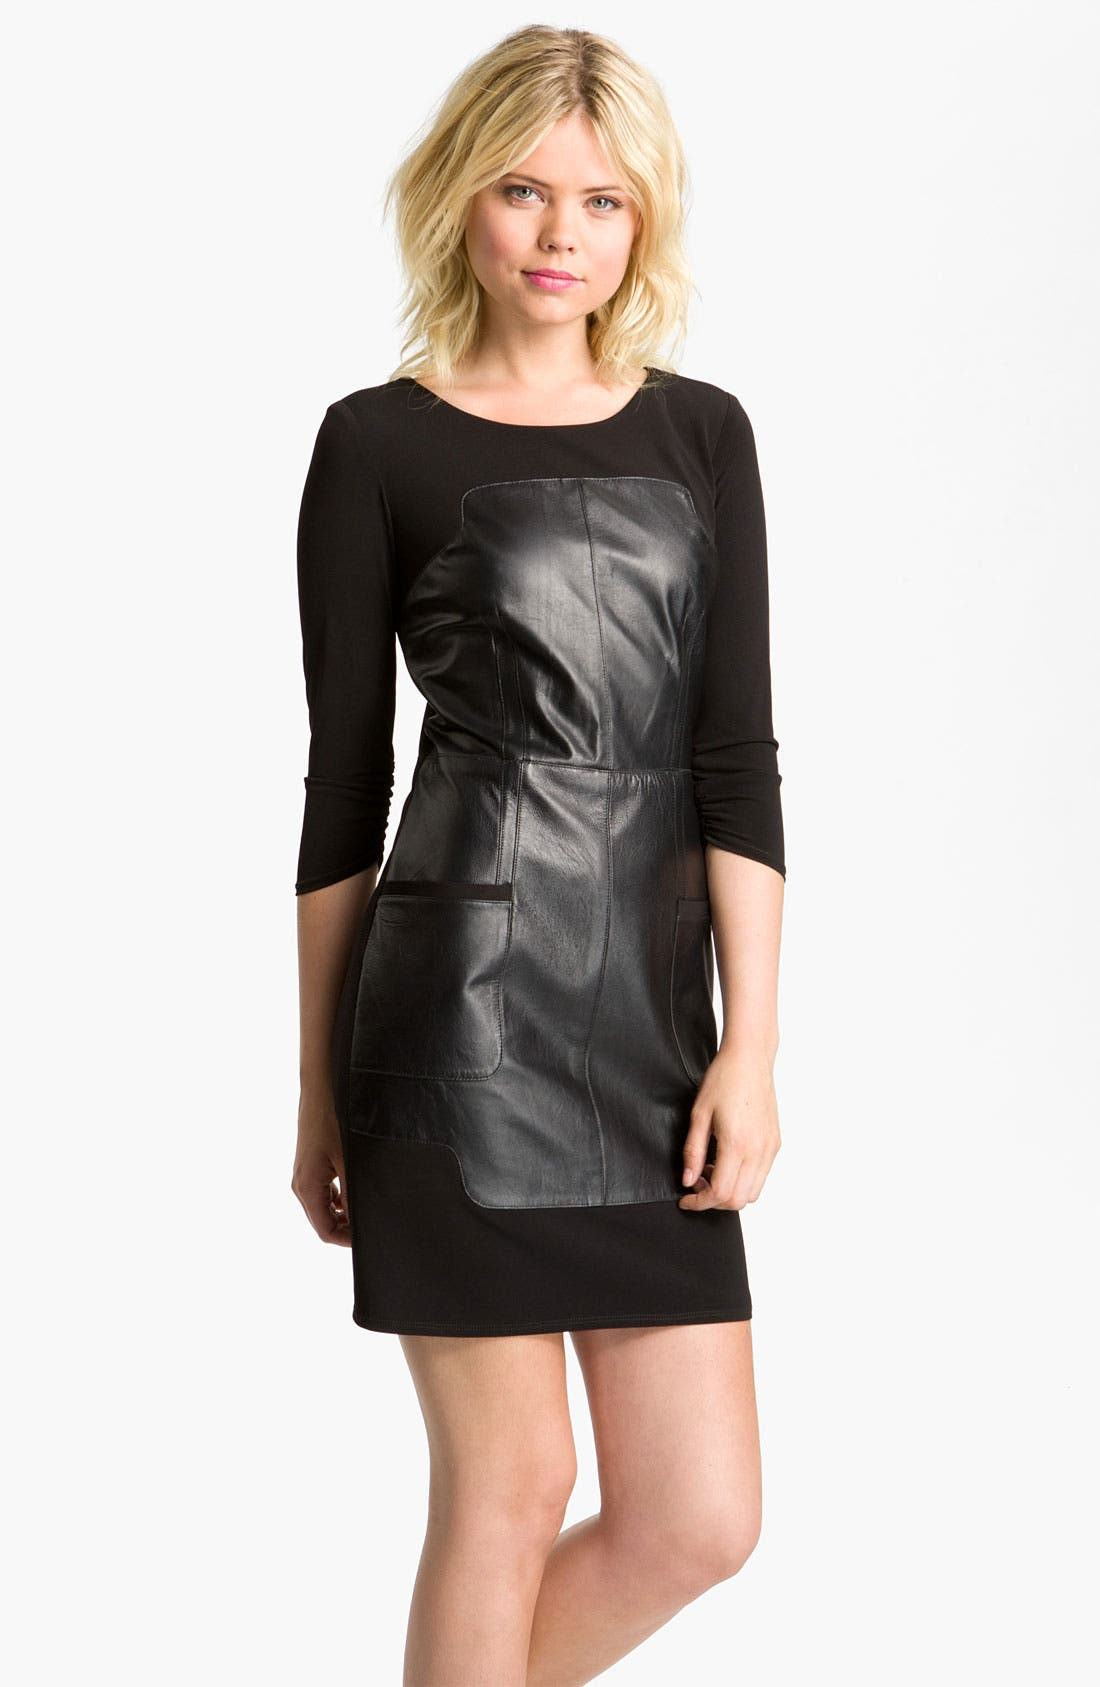 Alternate Image 1 Selected - Laundry by Shelli Segal Leather Inset Dress